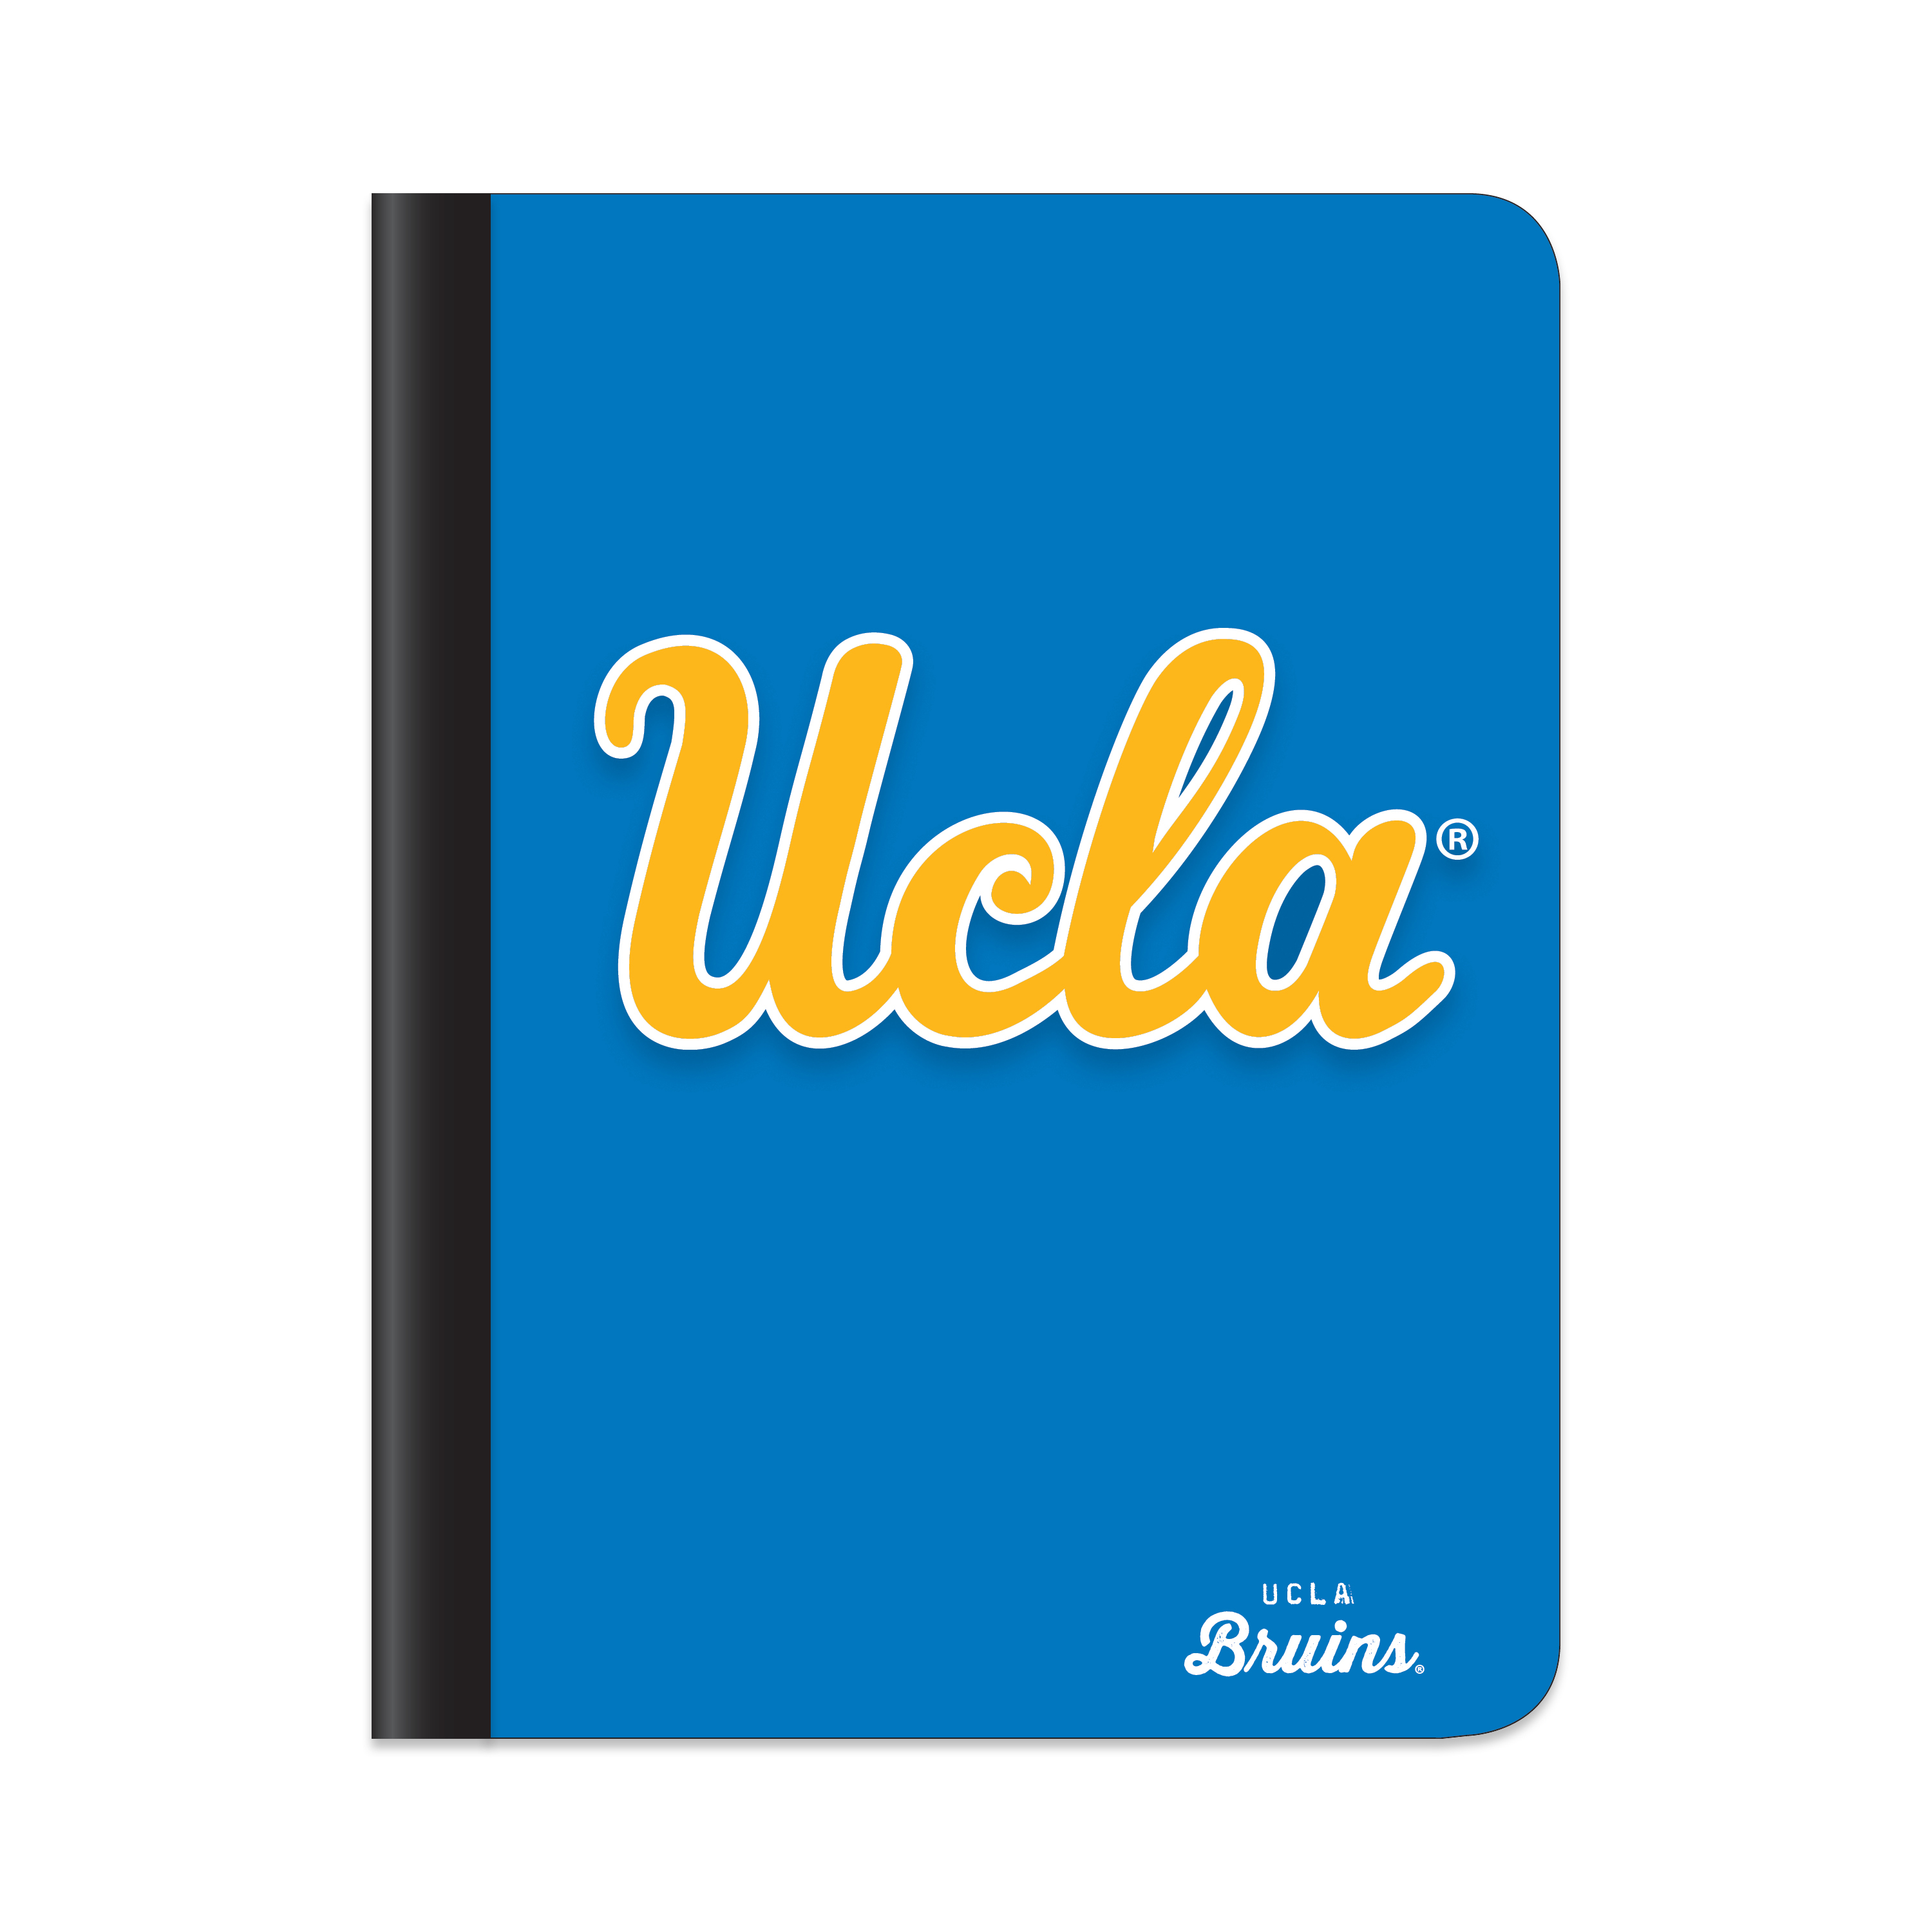 UCLA BRUINS CLASSIC COMPOSITION BOOK